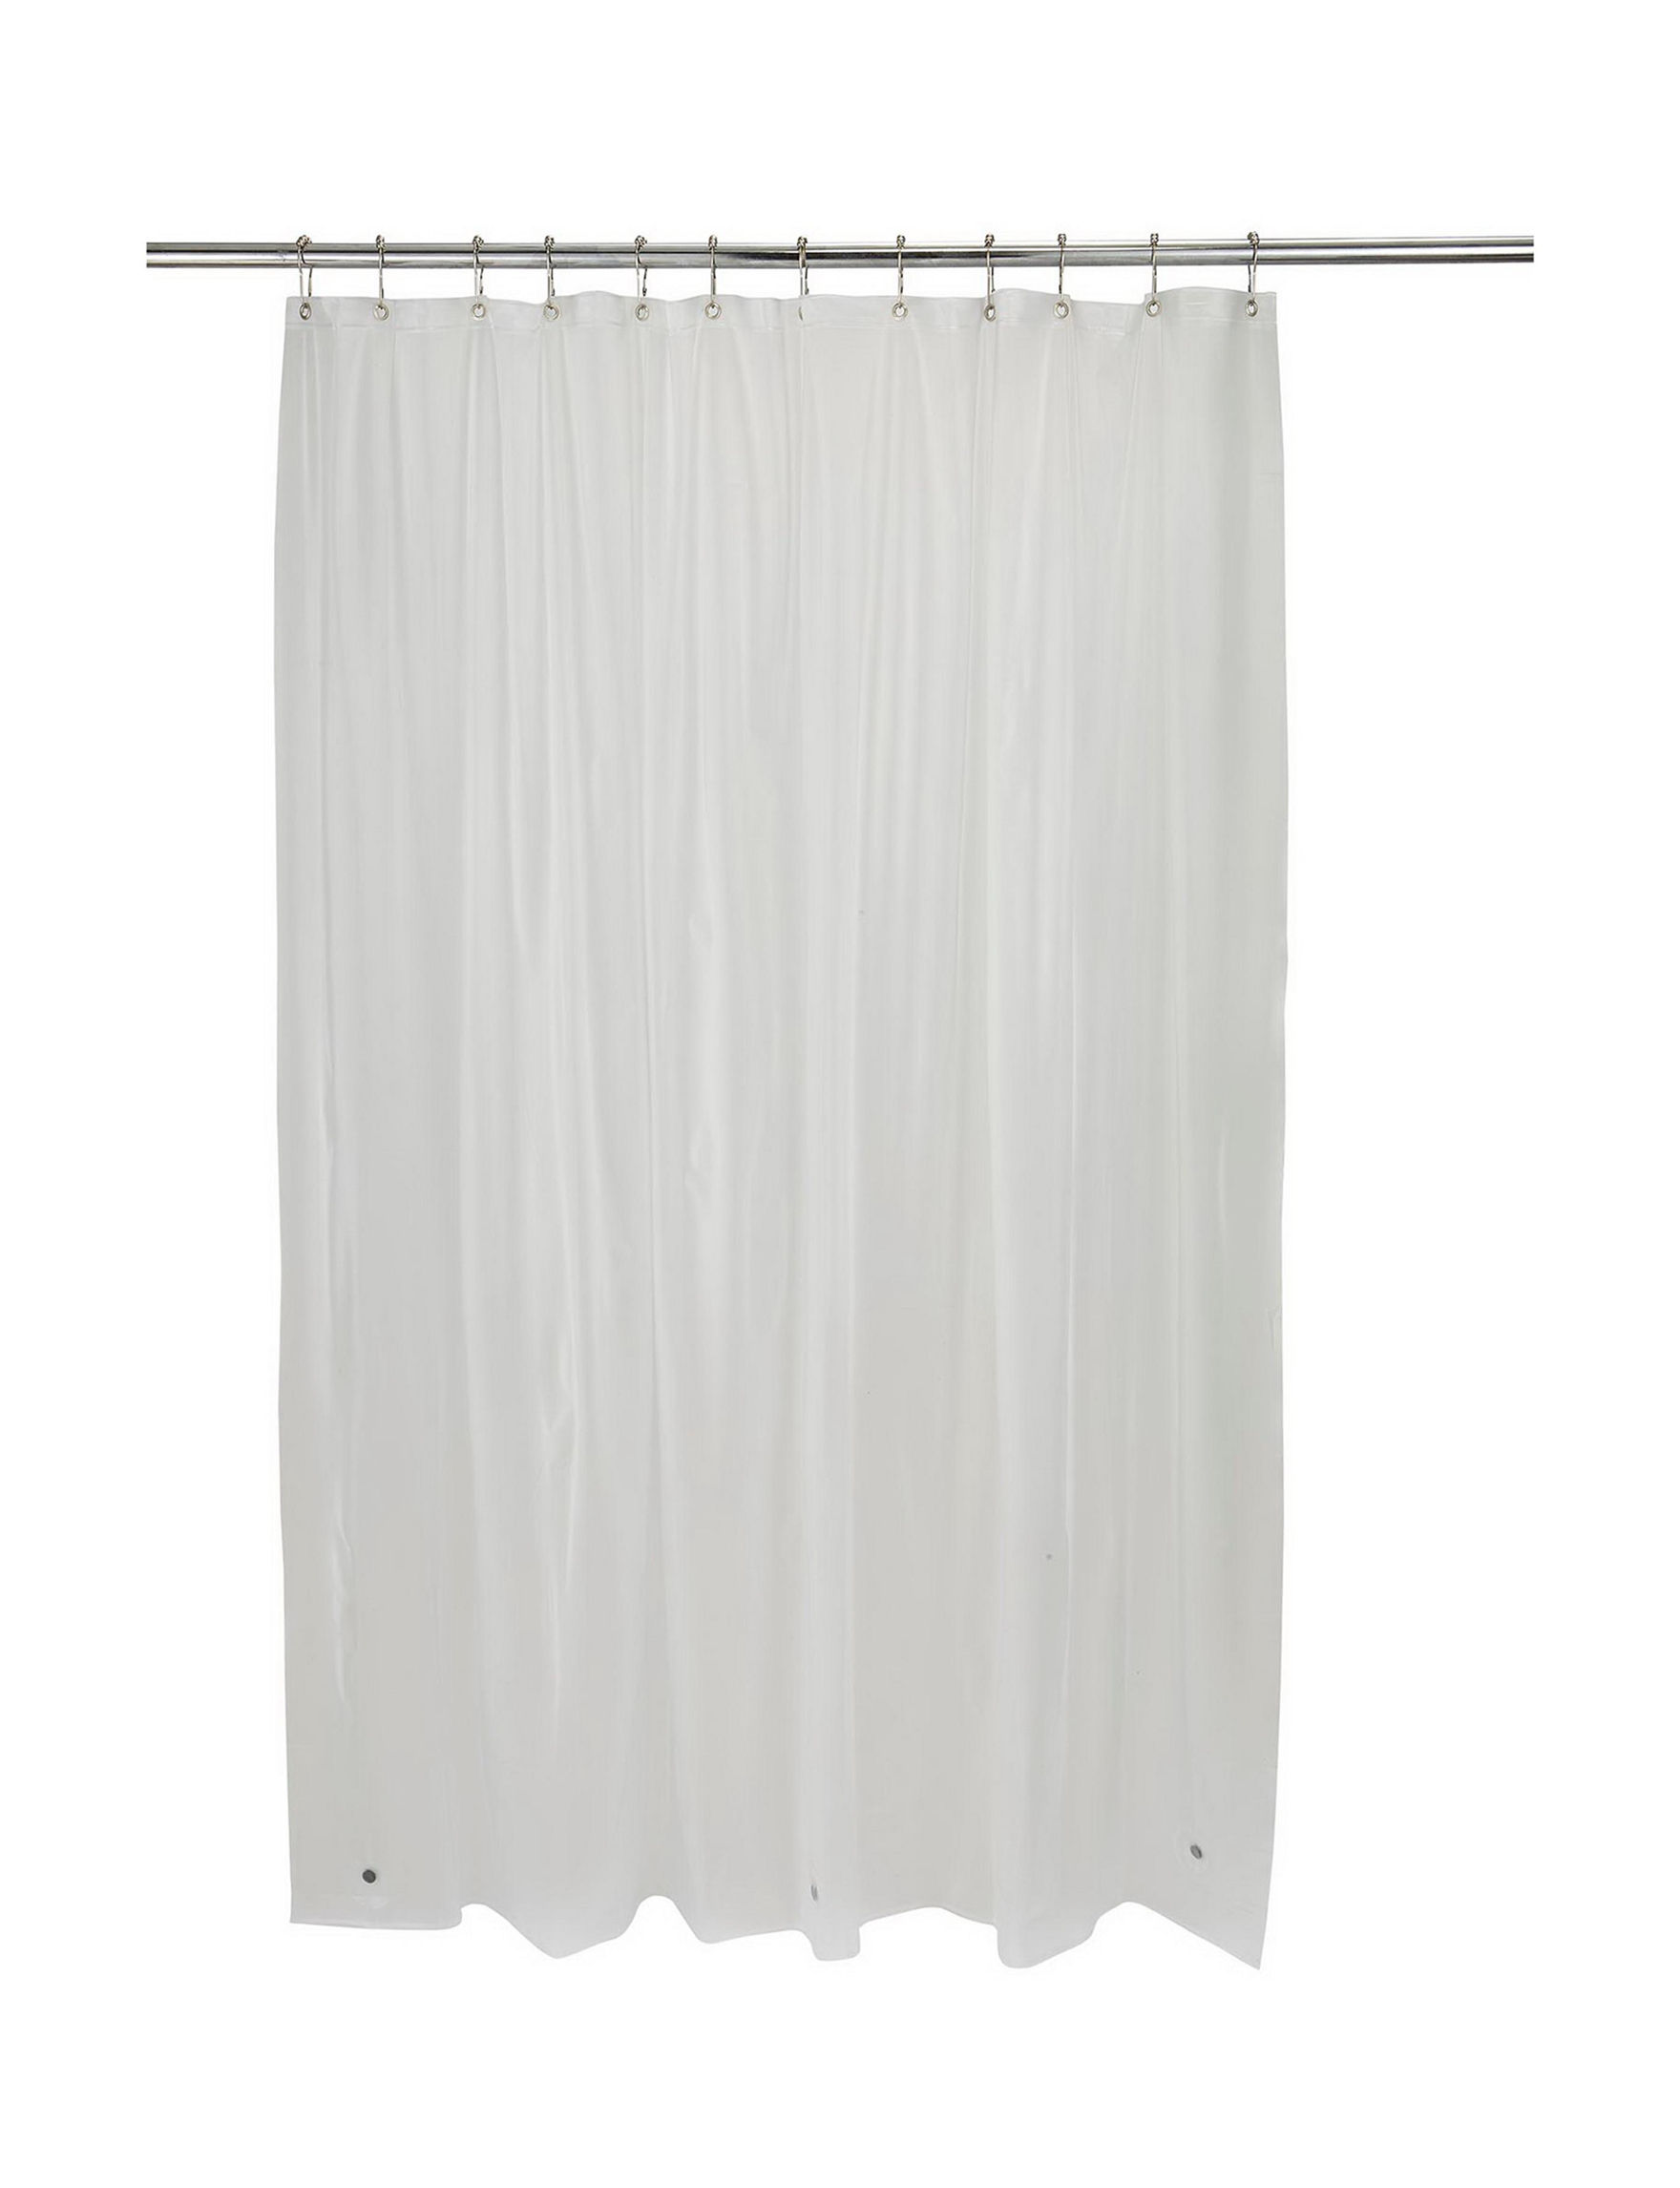 Home Details Clear Frosted Shower Curtains & Hooks